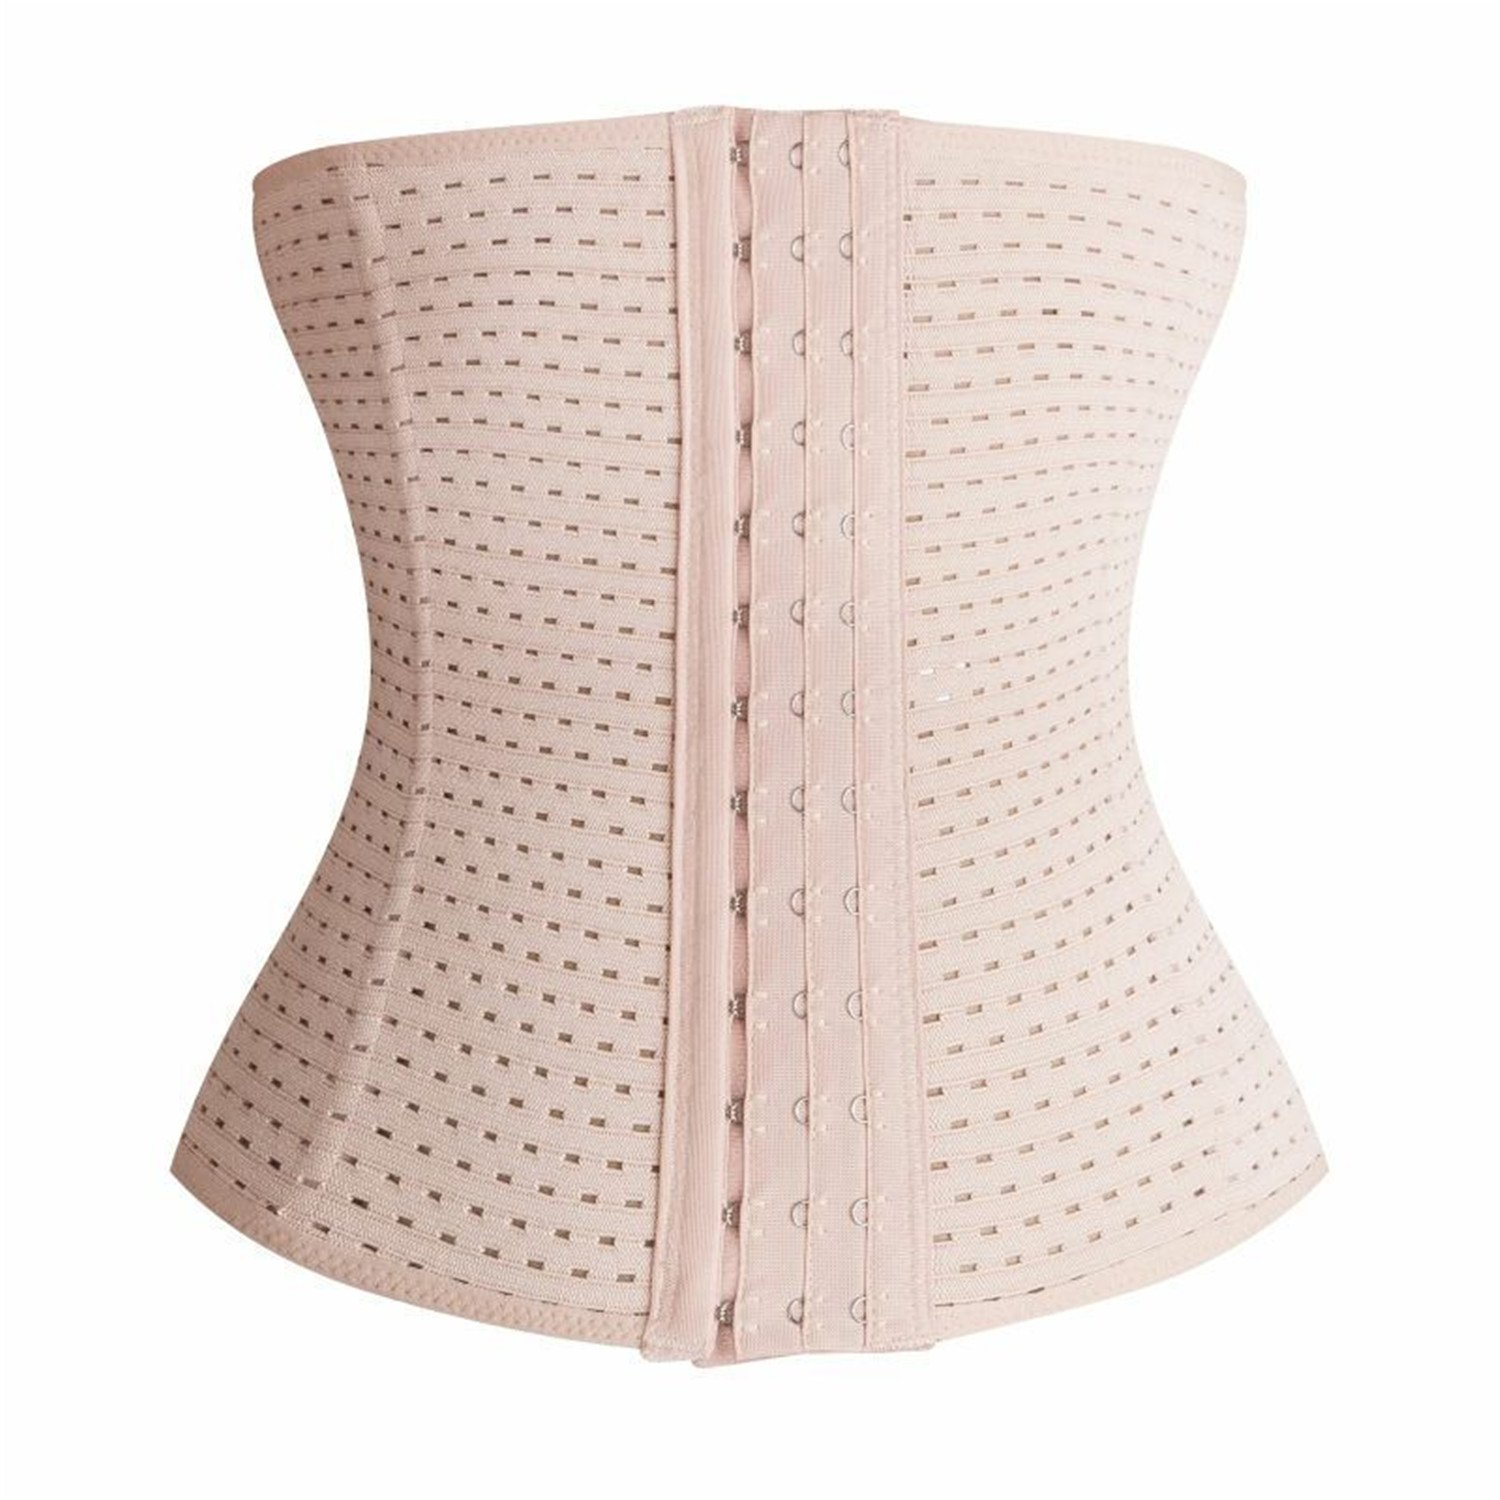 PULABO Slimming Body Shaper Belly Corsets Waist Trainer Training Corset Women RZT-2566 RZT-2566-Nude-3XL